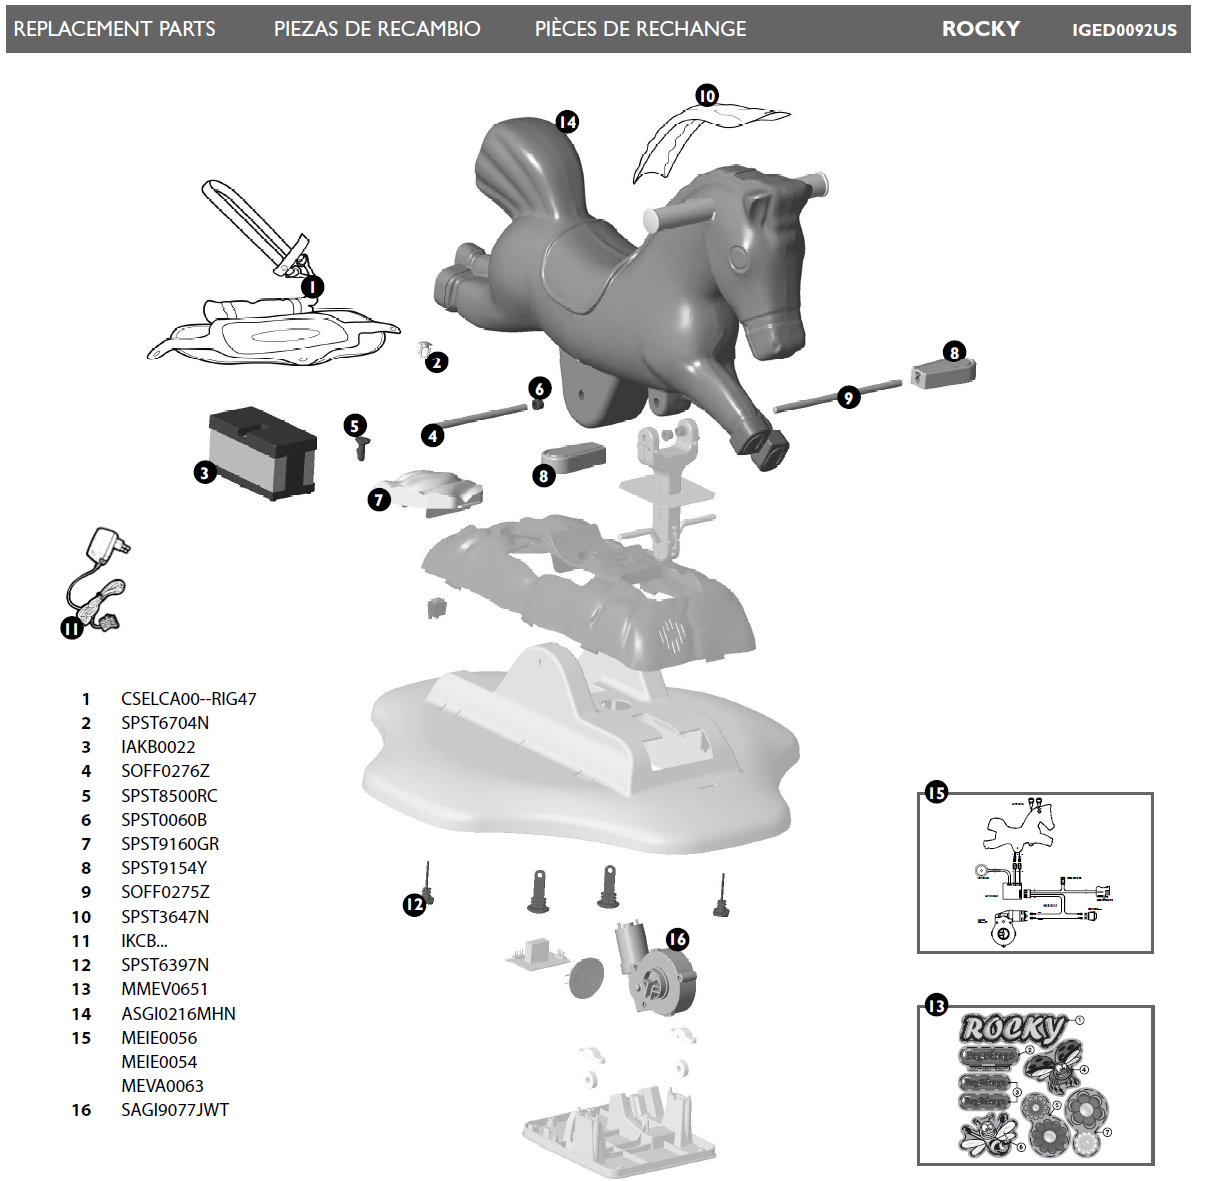 IGED0092US parts diagram